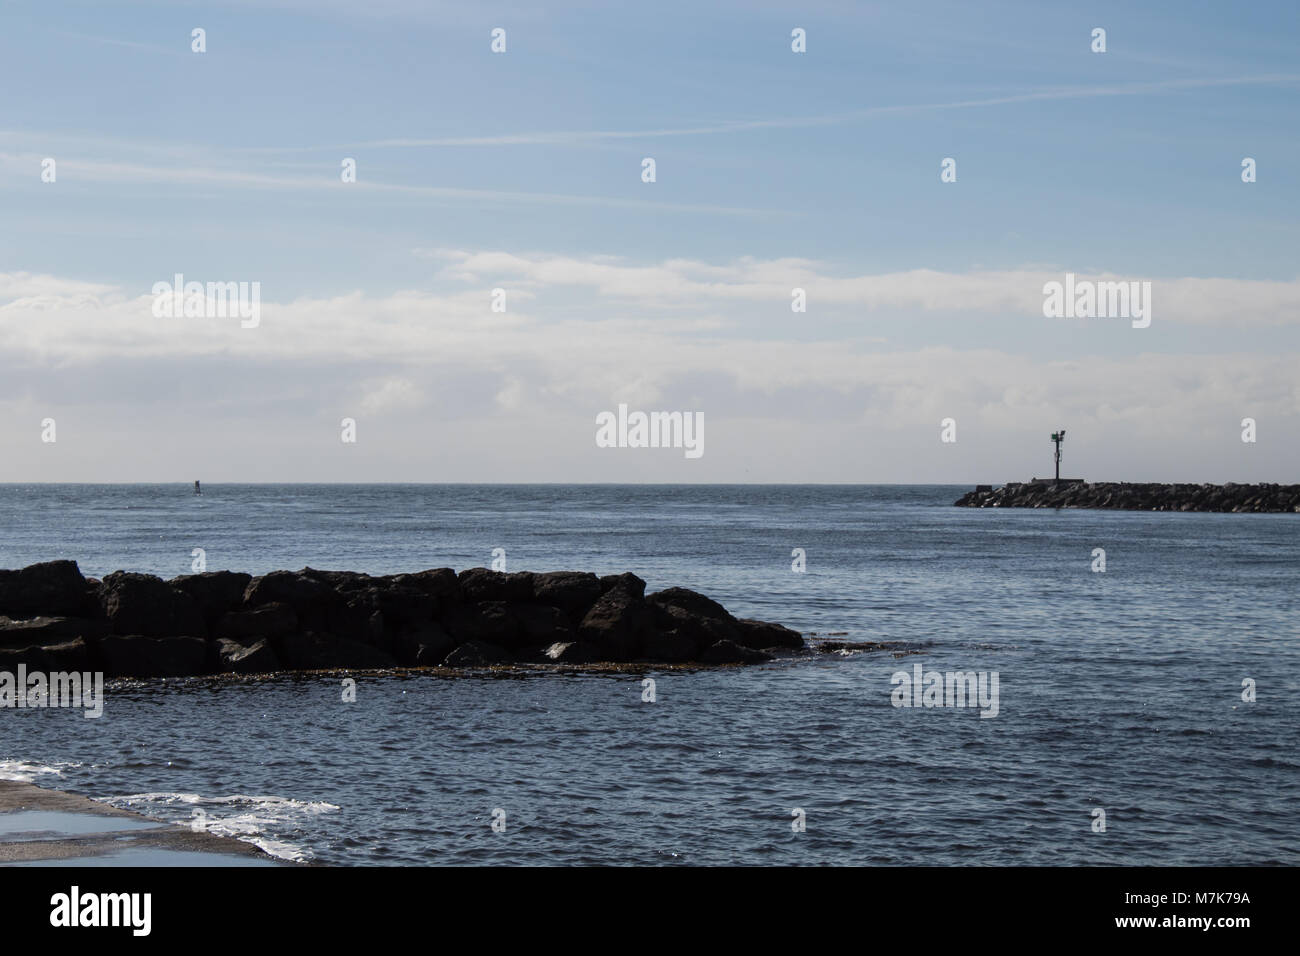 Newport Beach California seascape - Stock Image